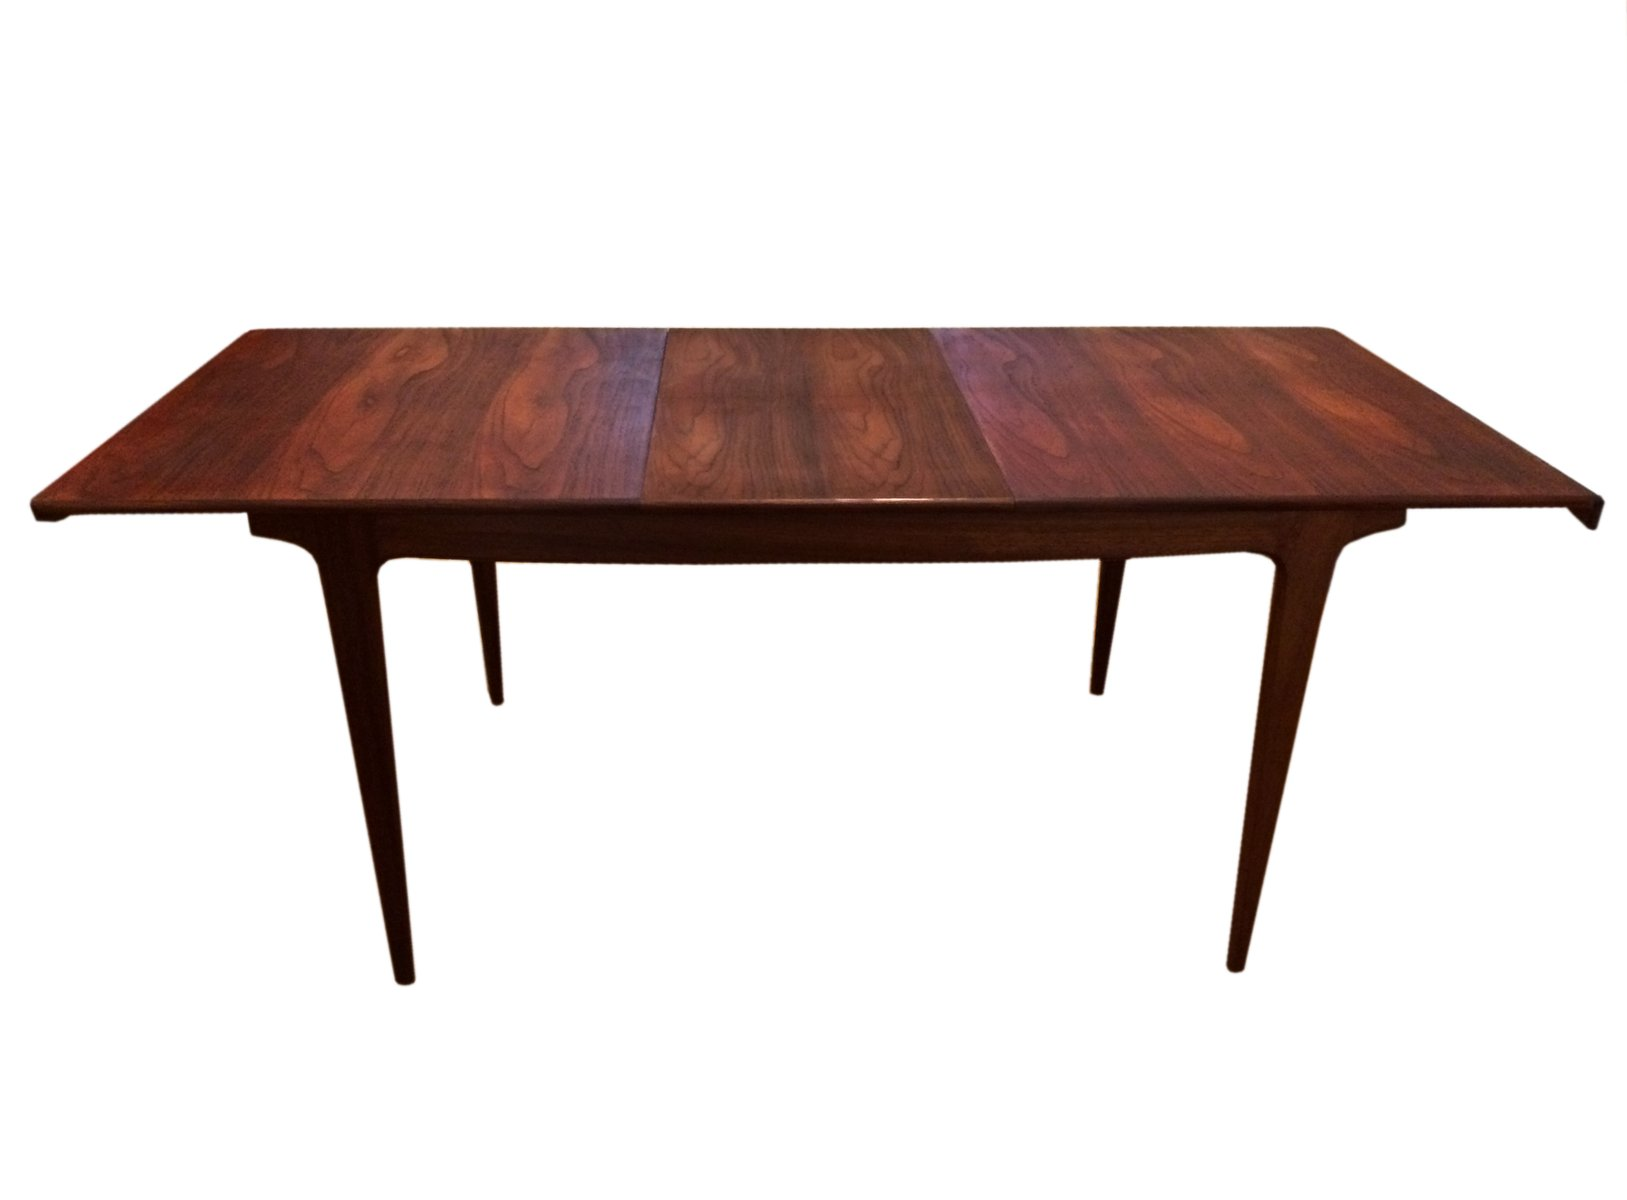 Table de salle manger 8 places mid century en teck par for Table salle a manger 8 places